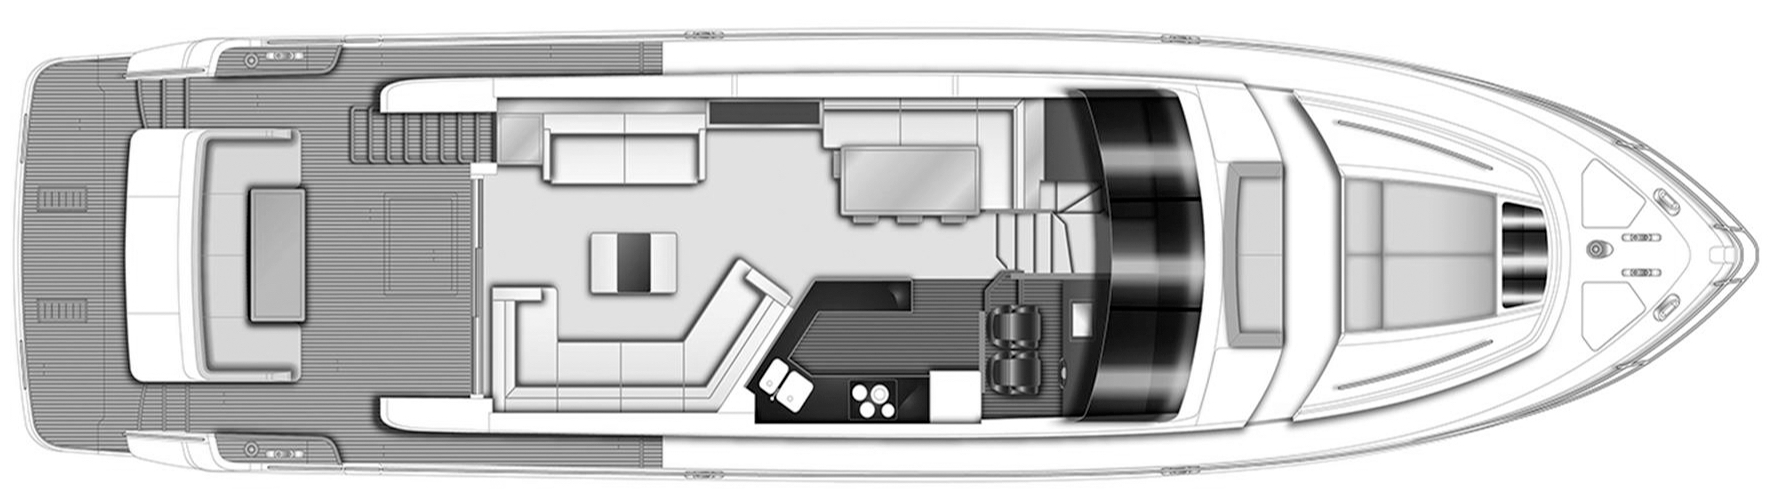 72 Motor Yacht Floor Plan 2